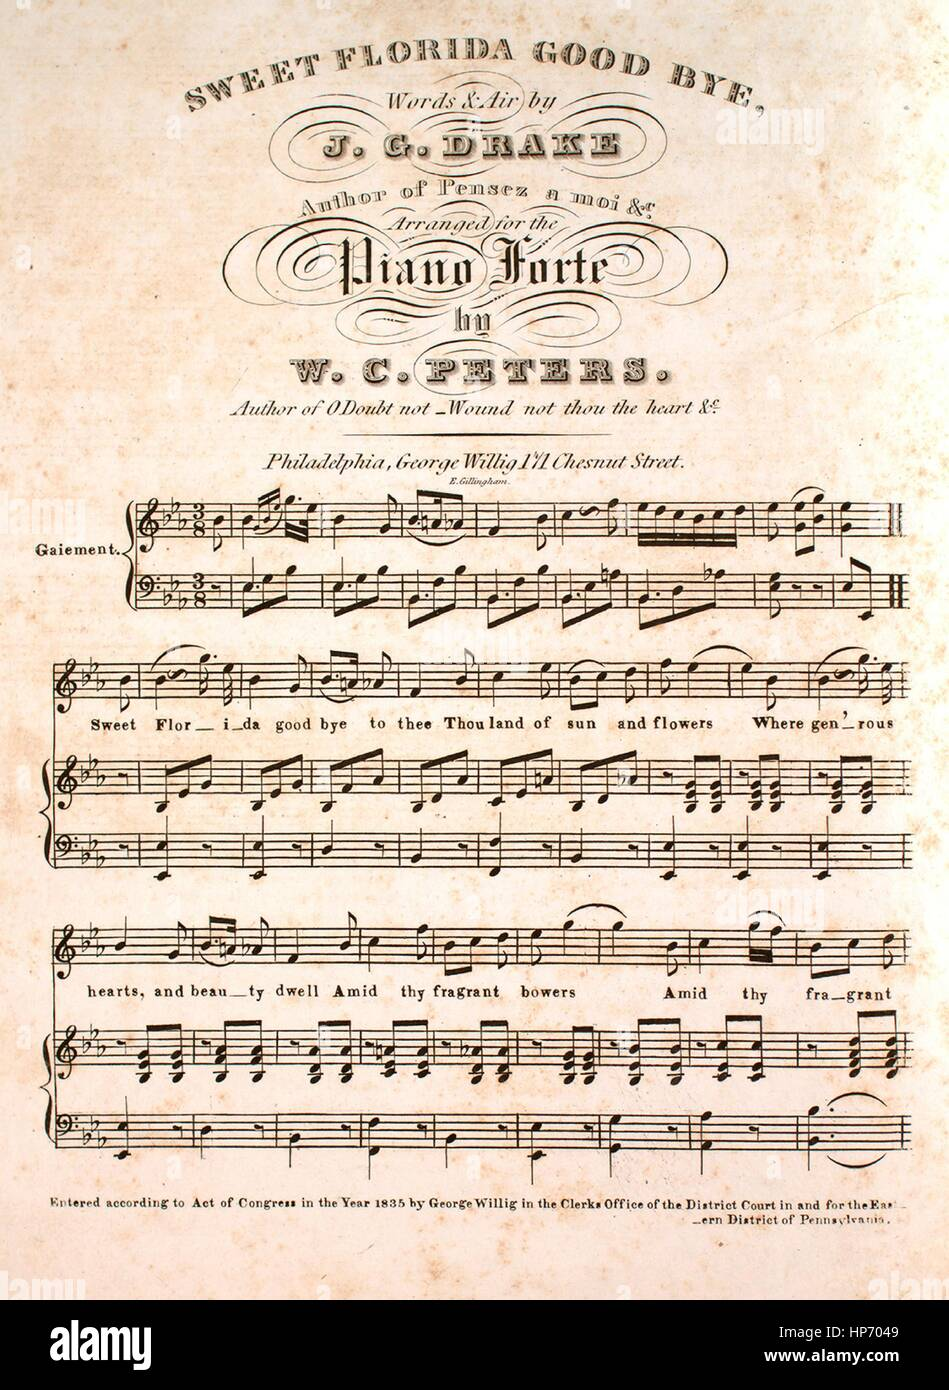 sheet music cover image of the song sweet florida good bye with original authorship notes reading words and air by jg drake arranged for the piano forte